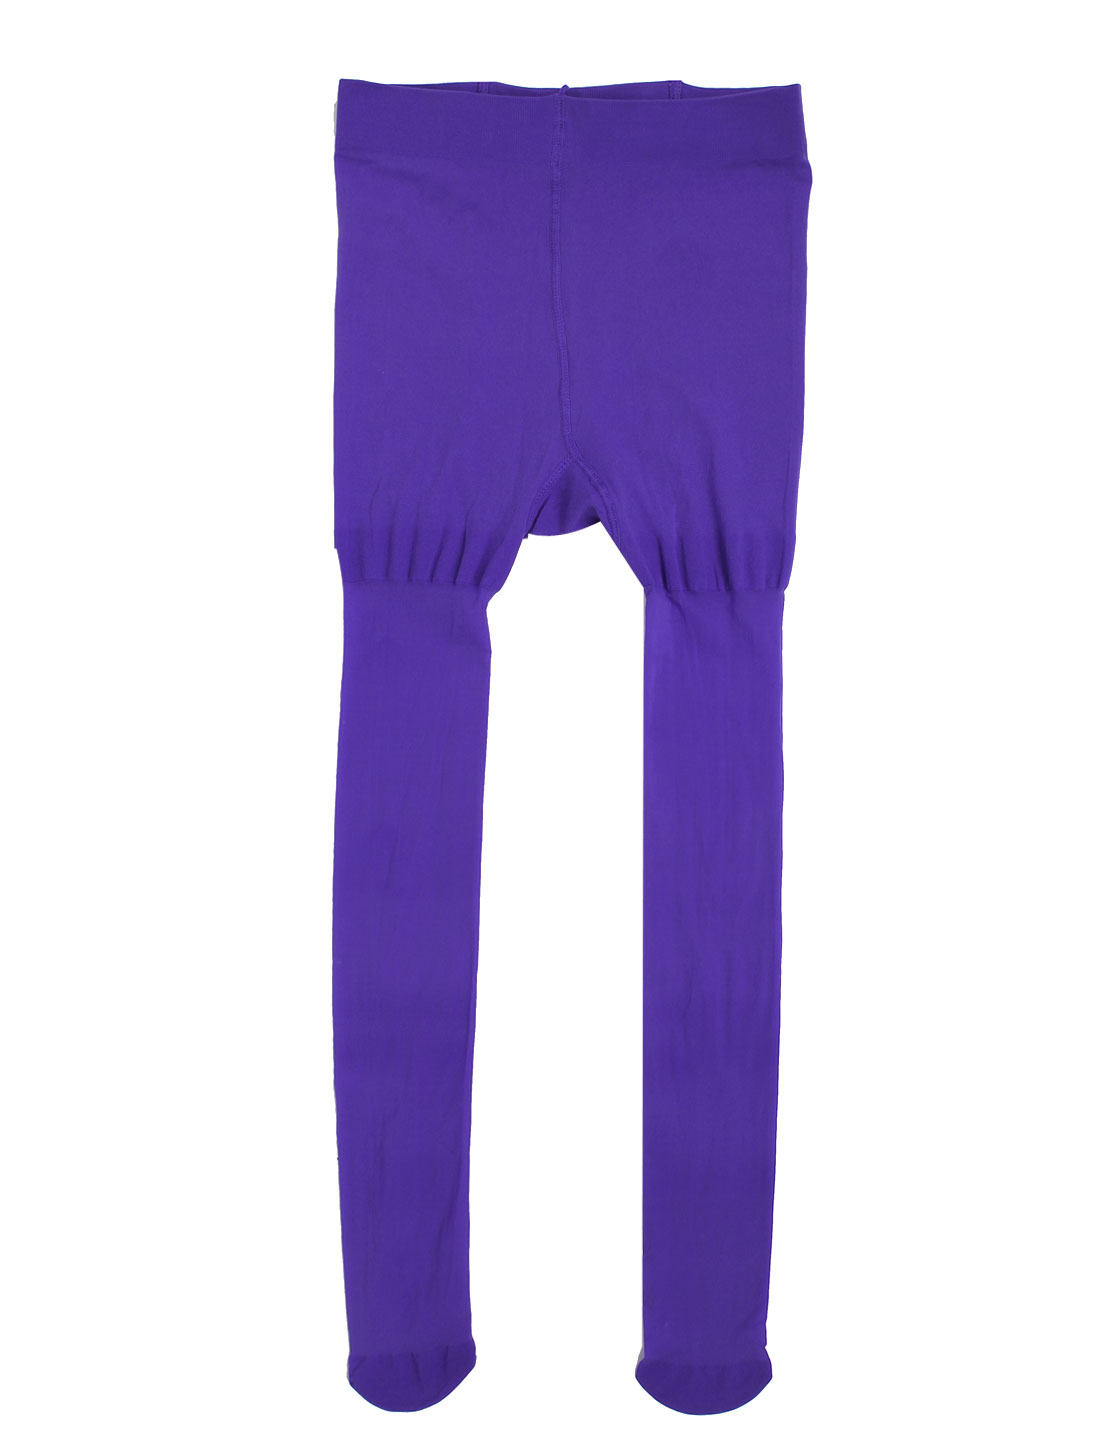 Ladies Close Fitting Footed Pantyhose Tights Leggings XS Purple